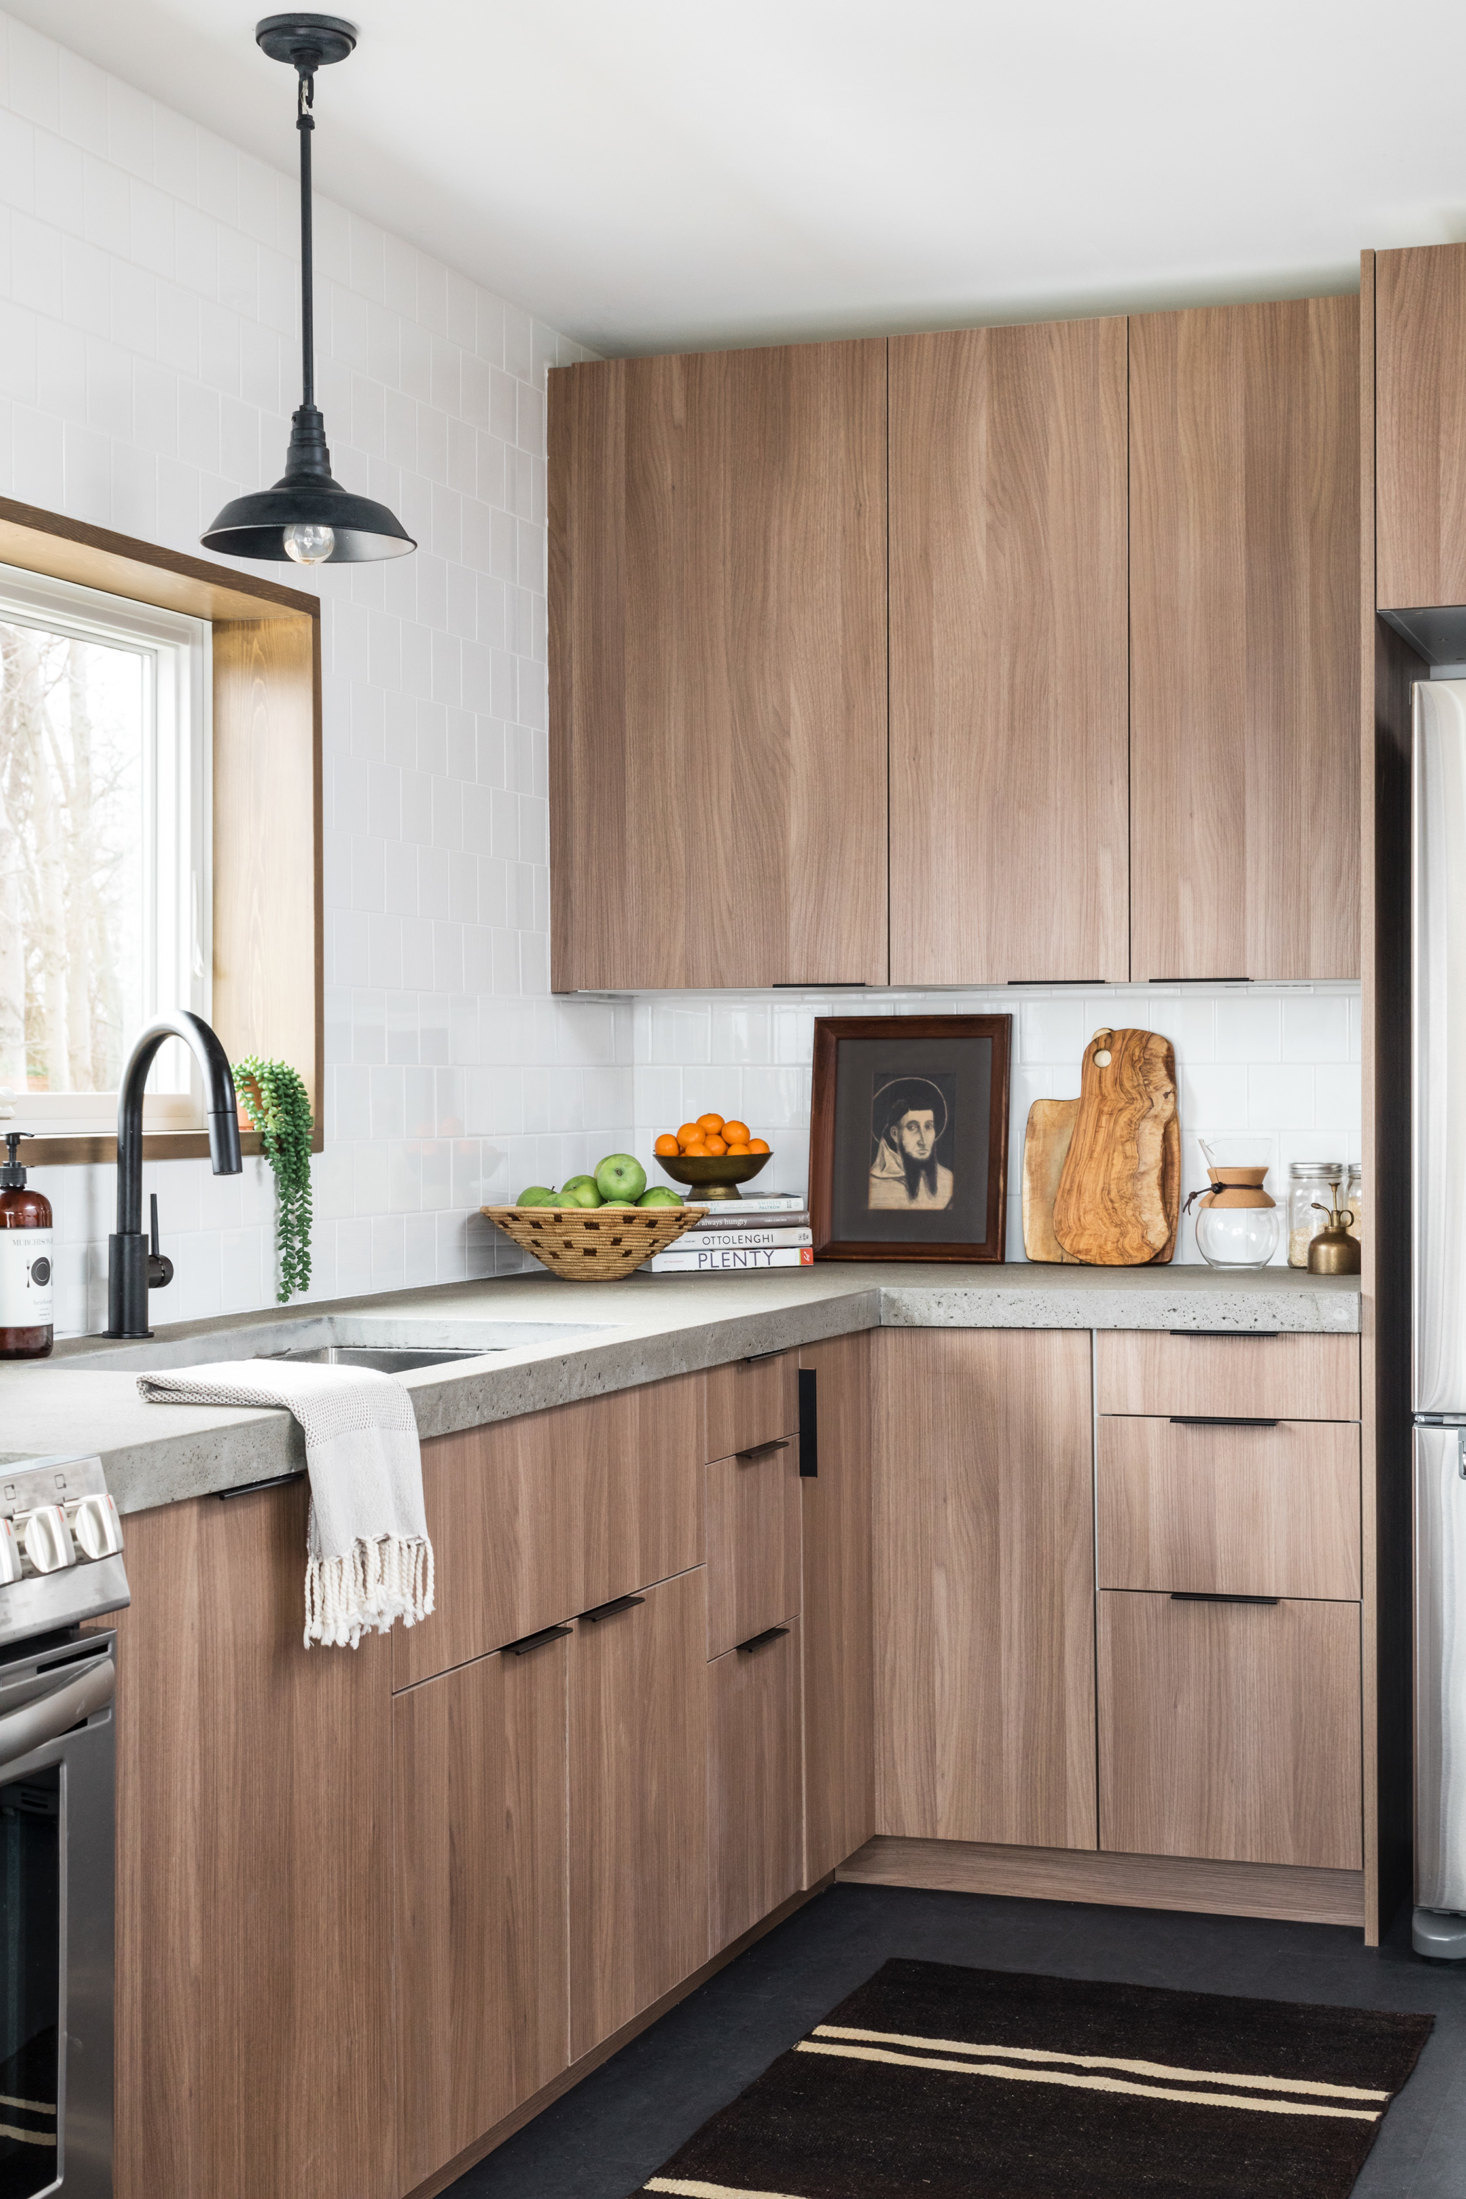 Ikea Kitchen Cabinet Doors Best Of In Praise Of Ikea 20 Ikea Kitchens From the Remodelista